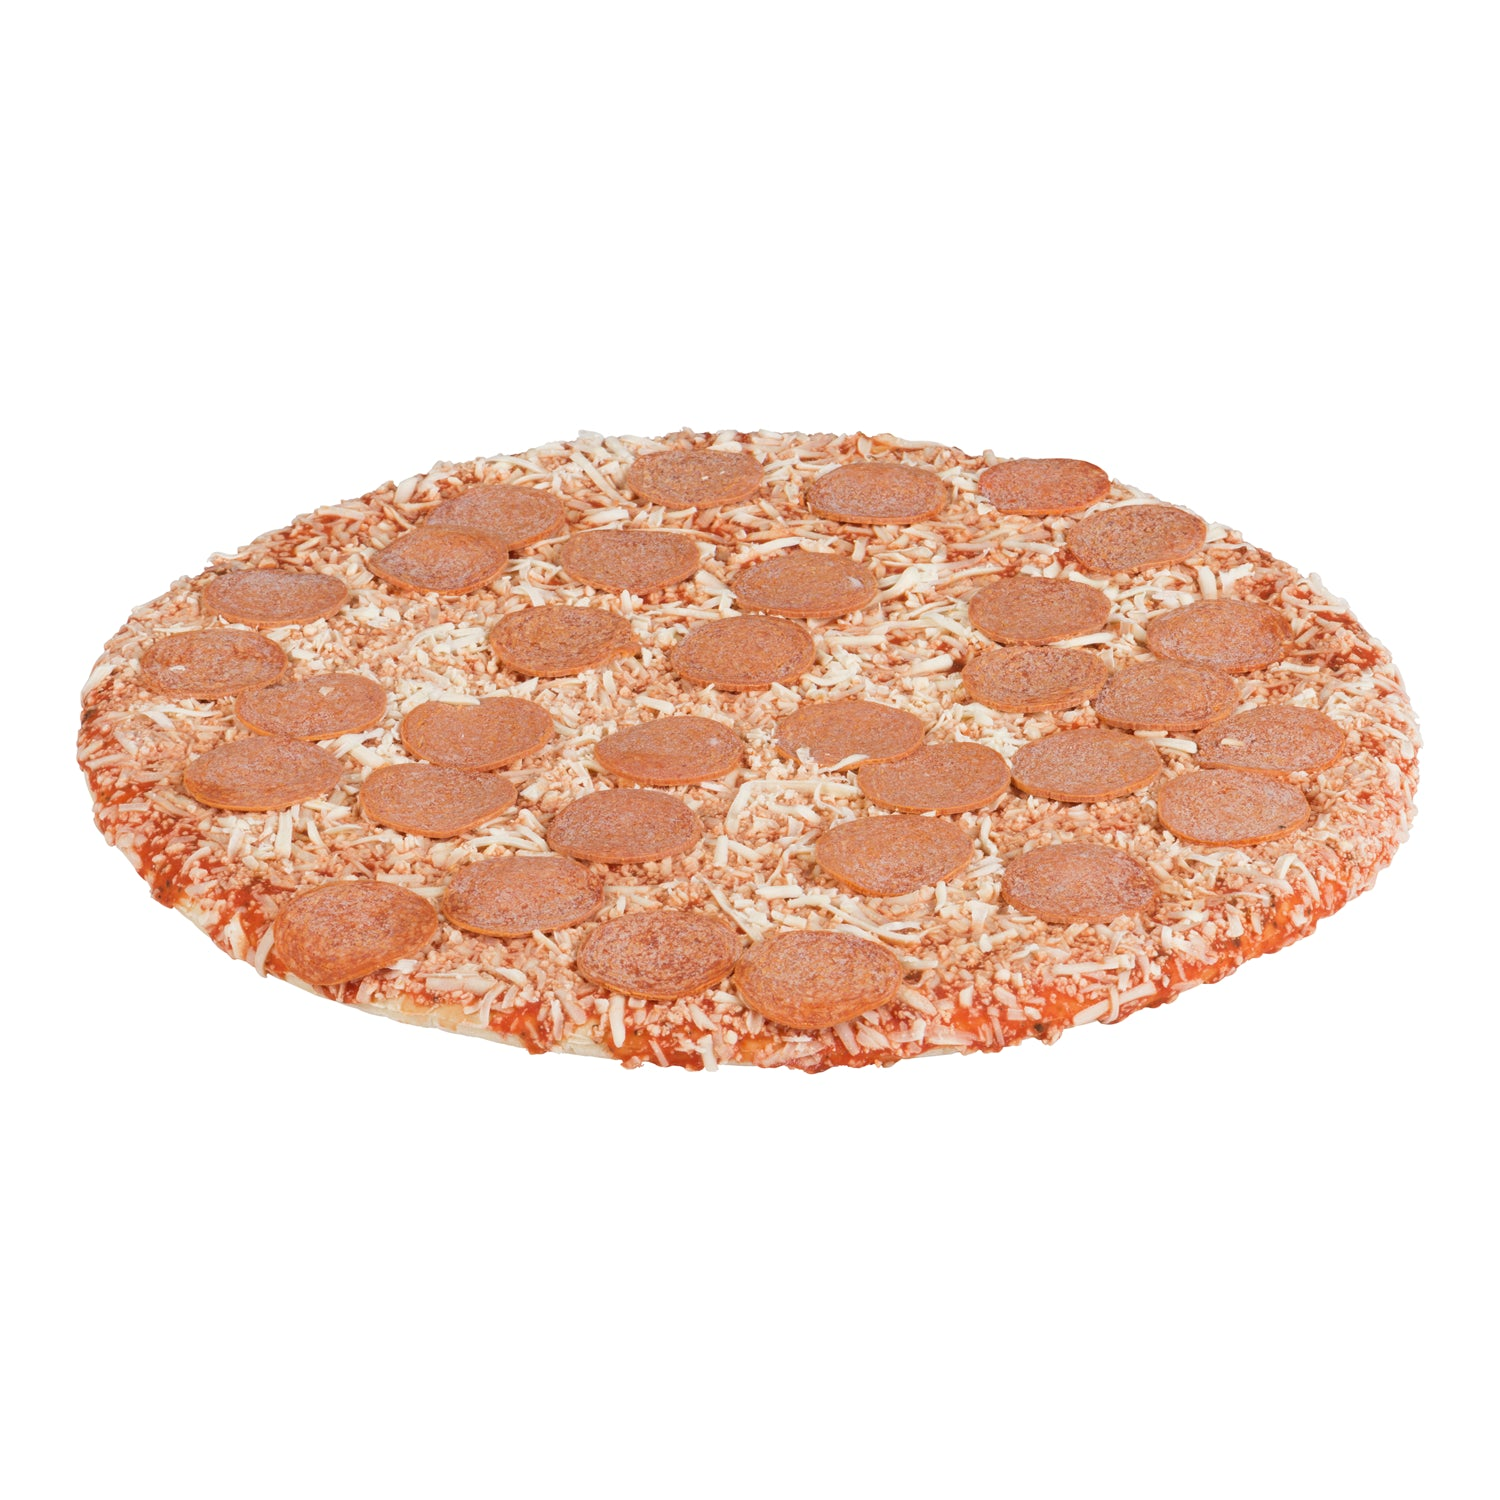 "Freschetta Frozen Pepperoni Pizza 16"" - 6 Pack [$11.00/each]"